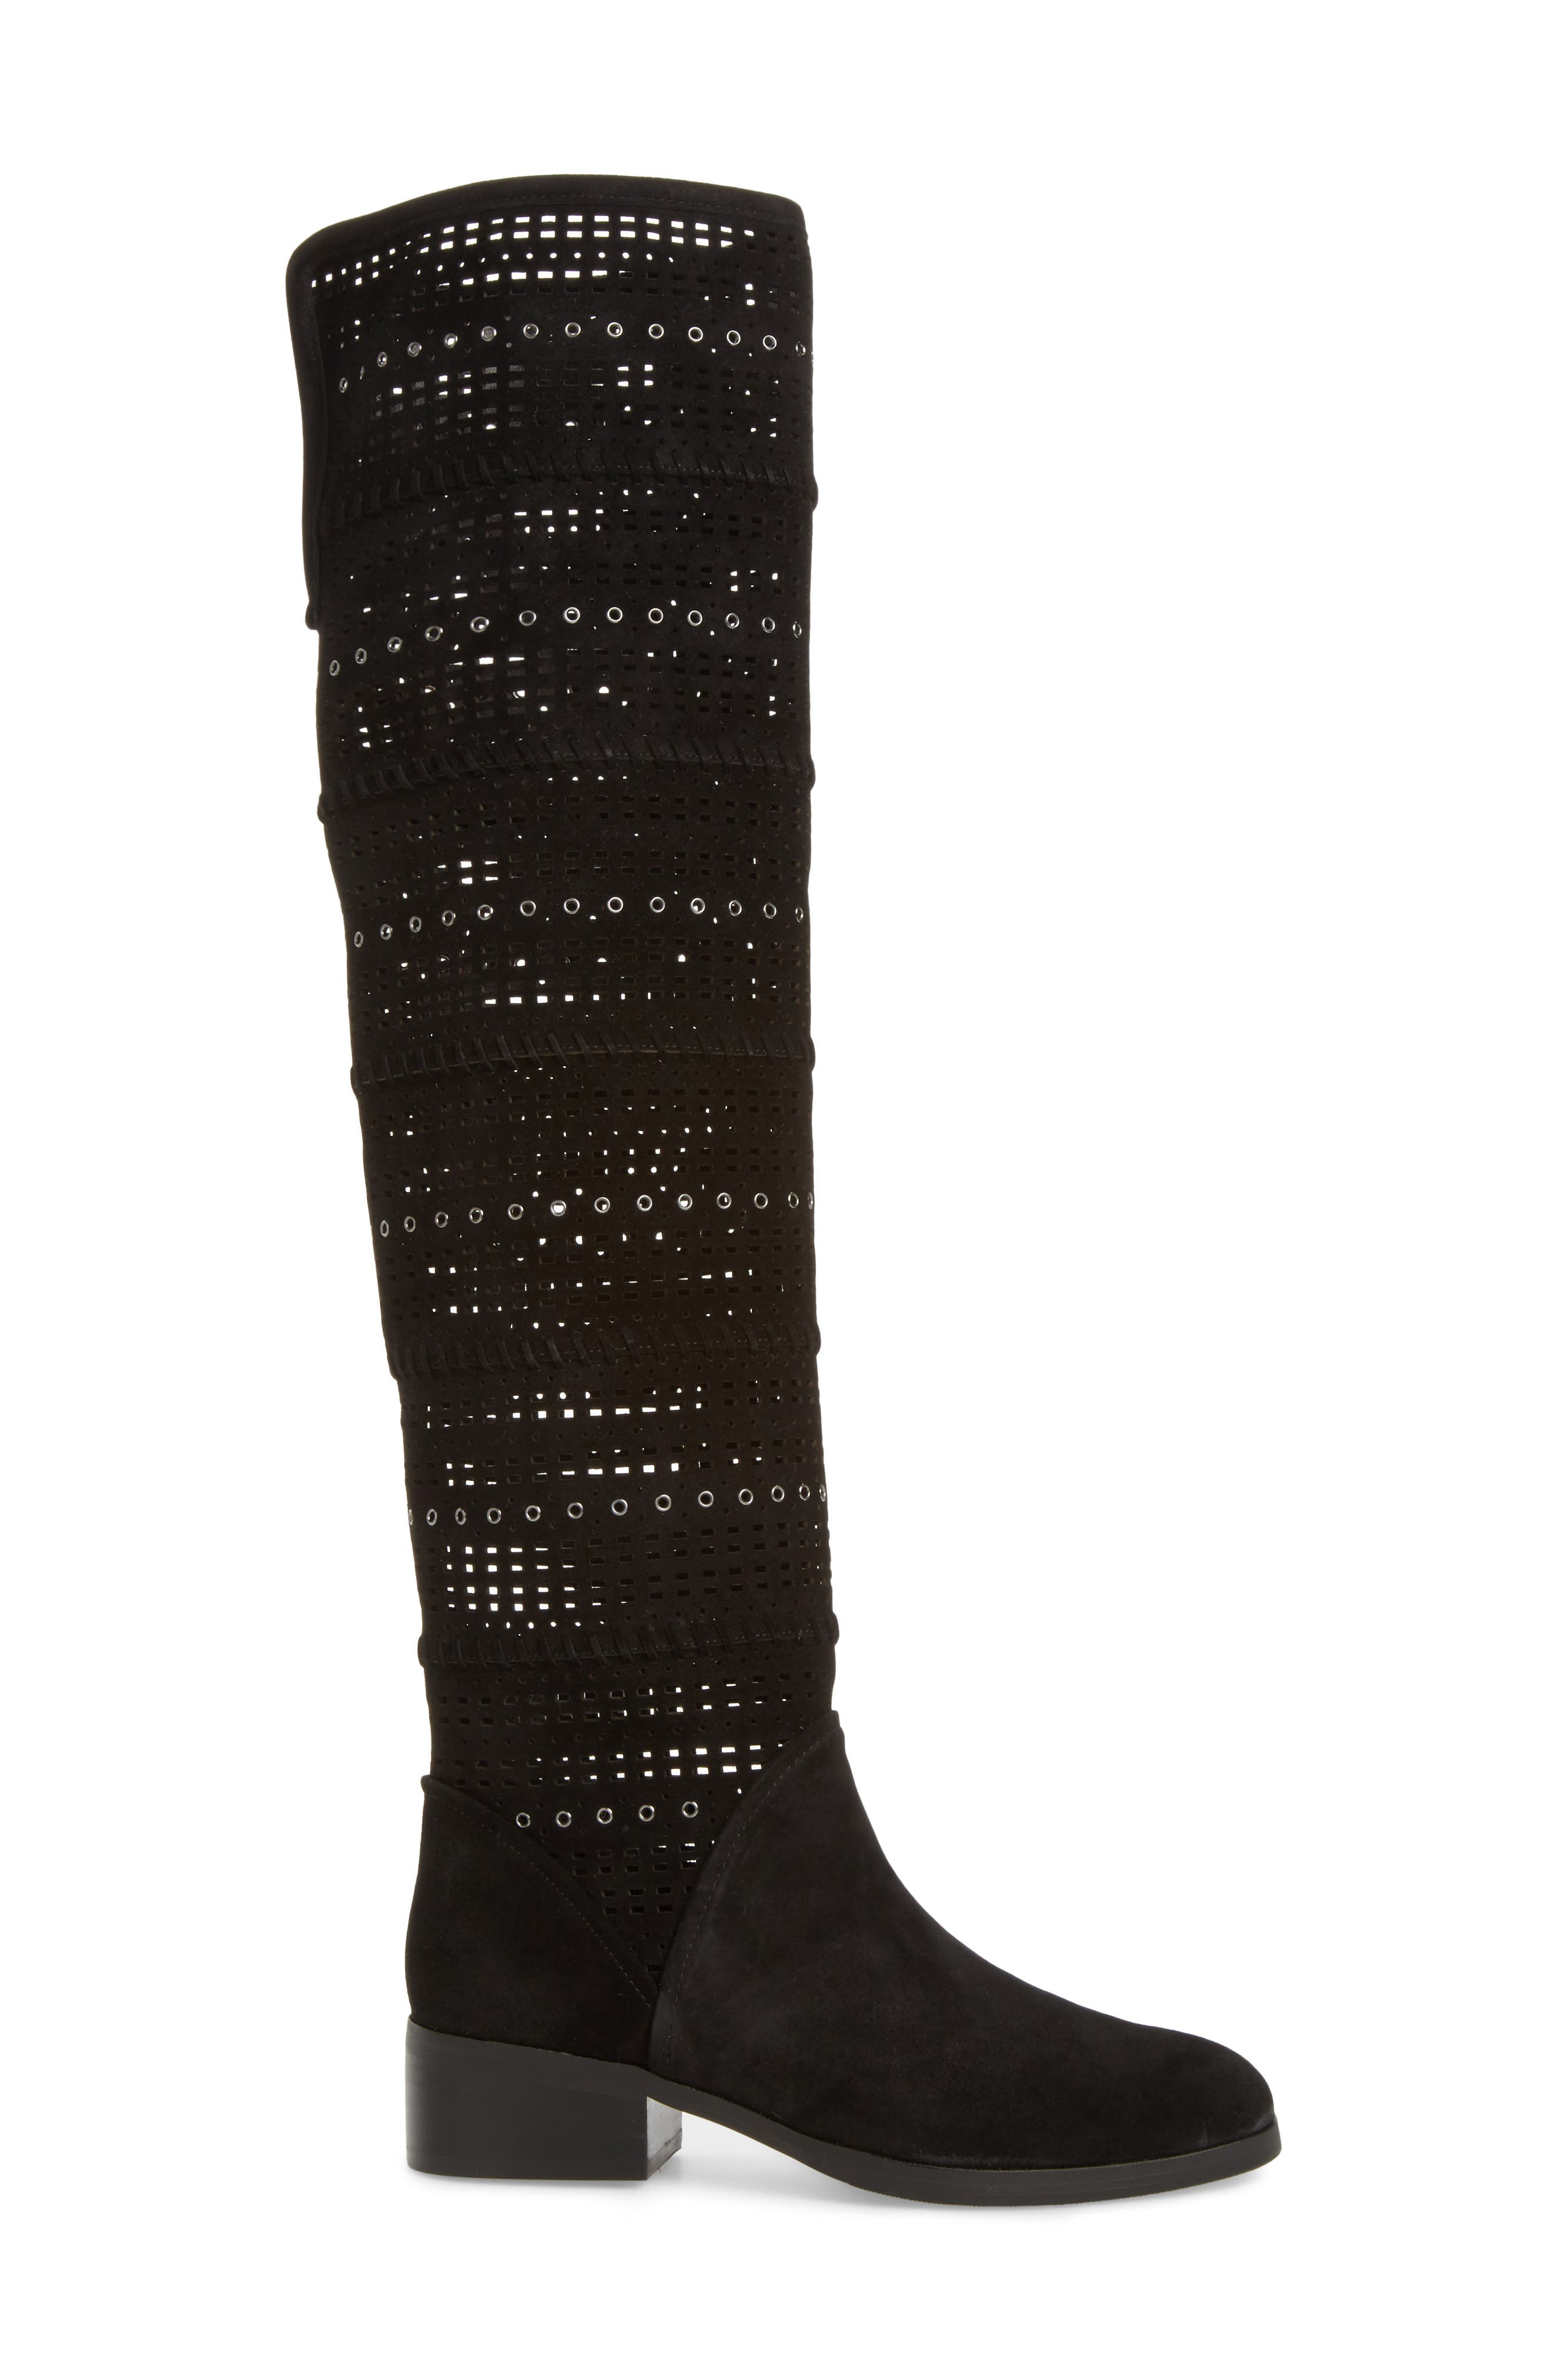 Devya Over the Knee Boot,                             Alternate thumbnail 3, color,                             001